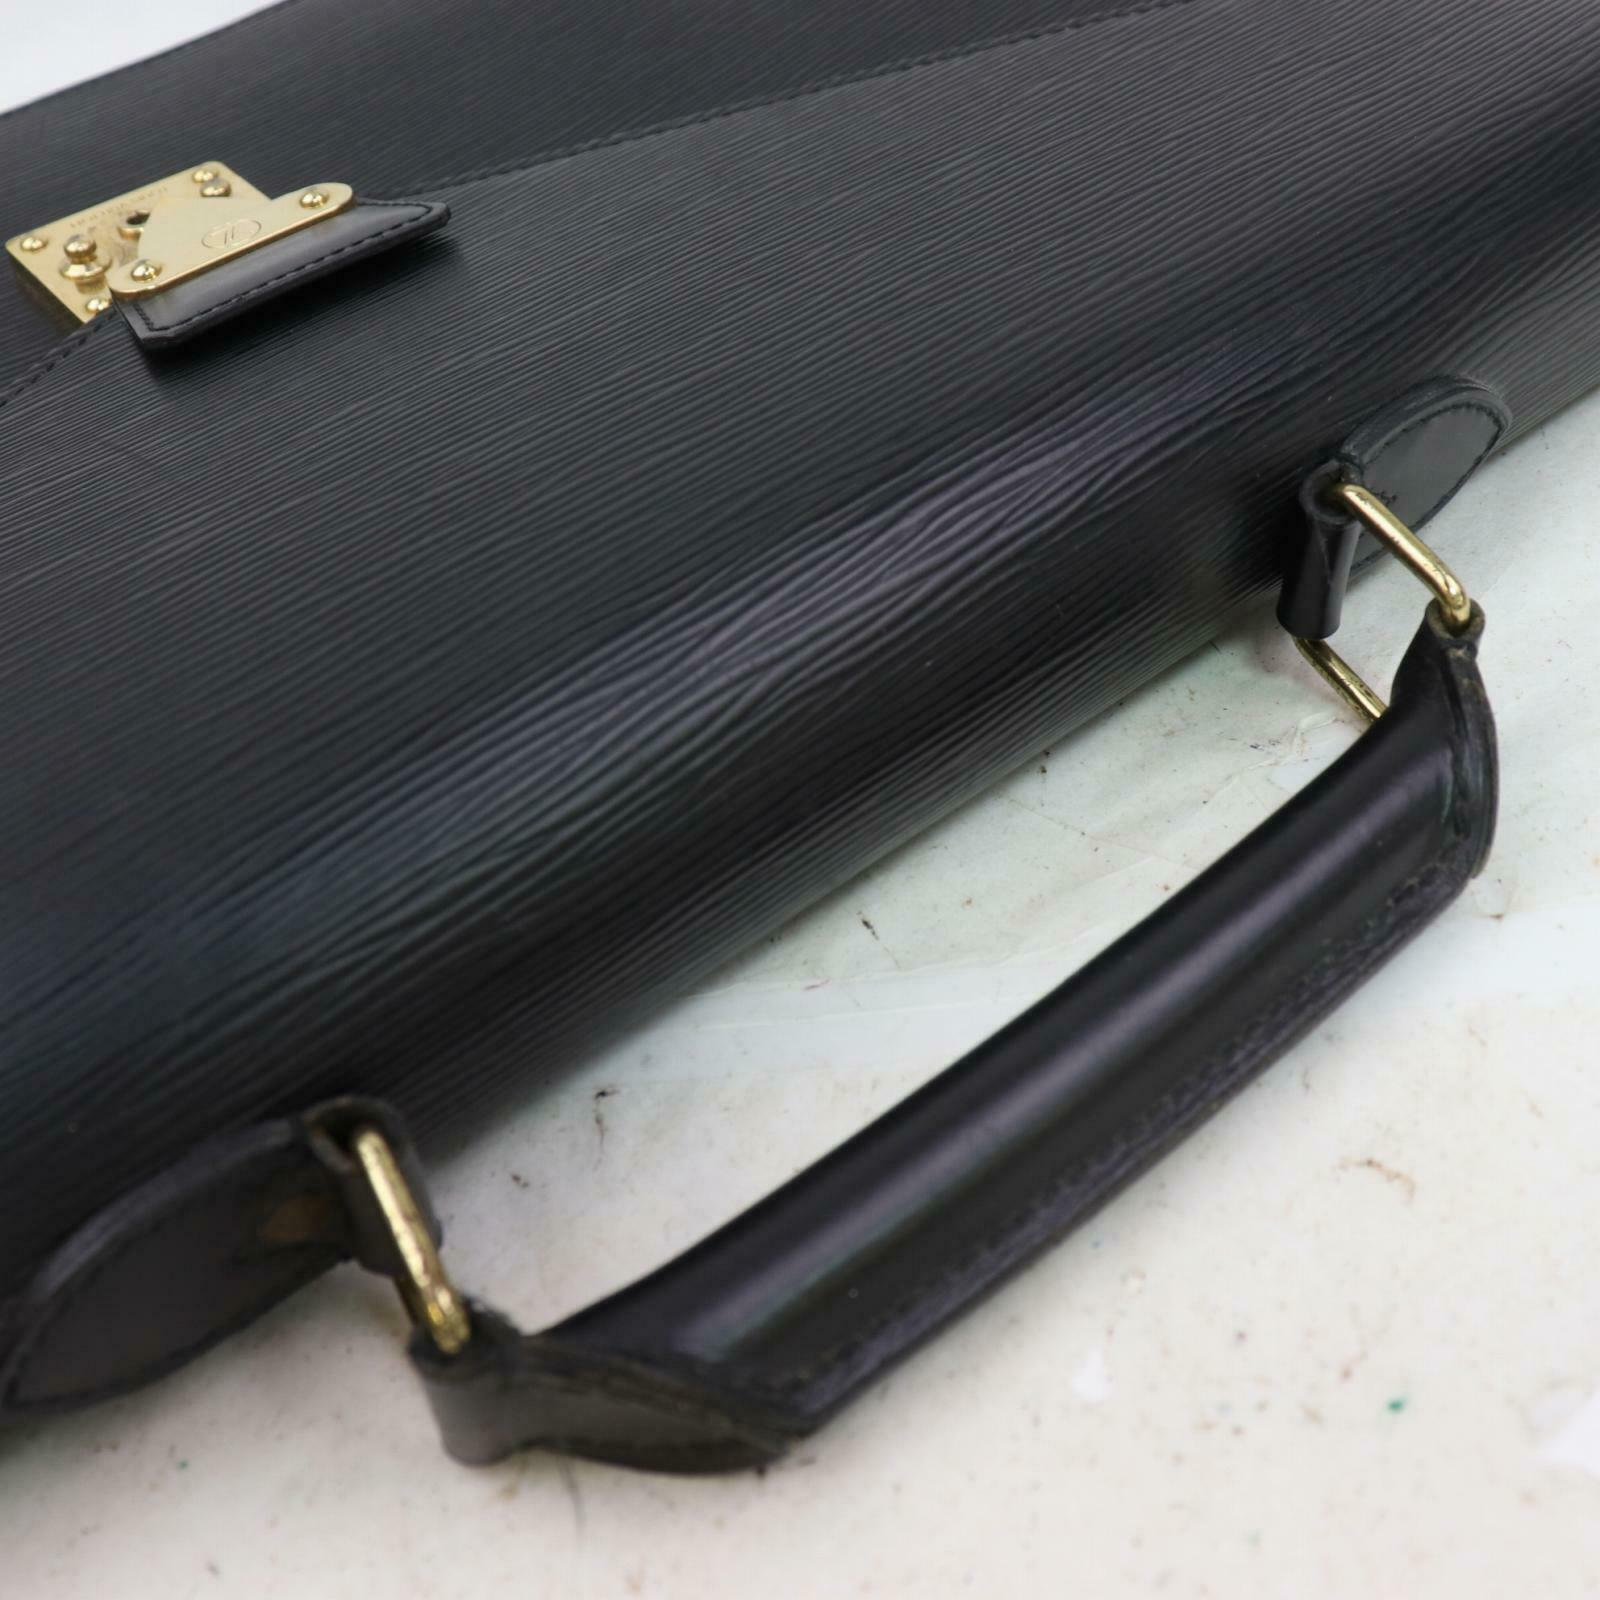 Louis Vuitton Serviette Ambassadeur M54412 Black Epi Brief Case 11319